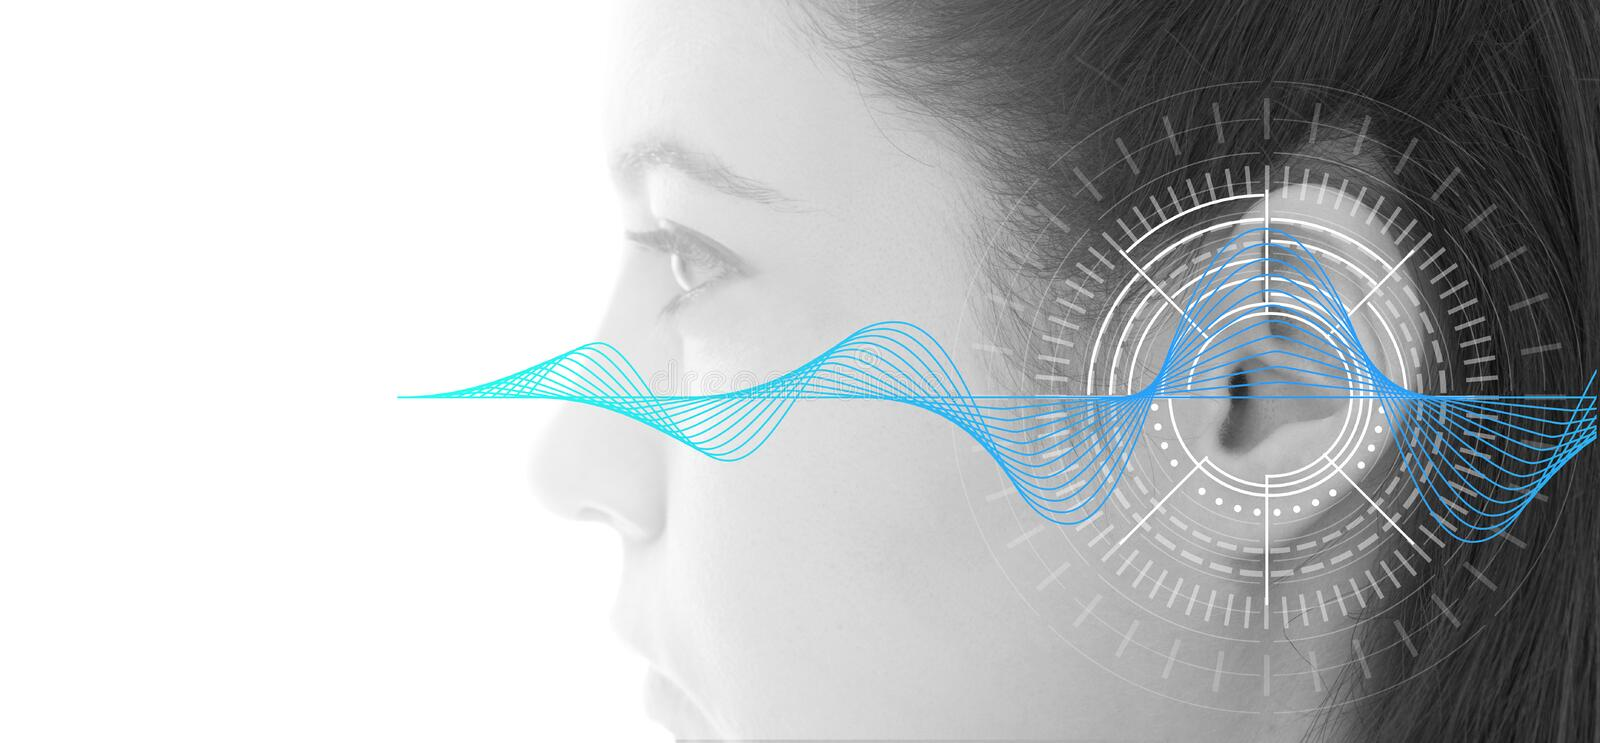 Hearing test showing ear of young woman with sound waves simulation technology. Isolated on white banner - black and white